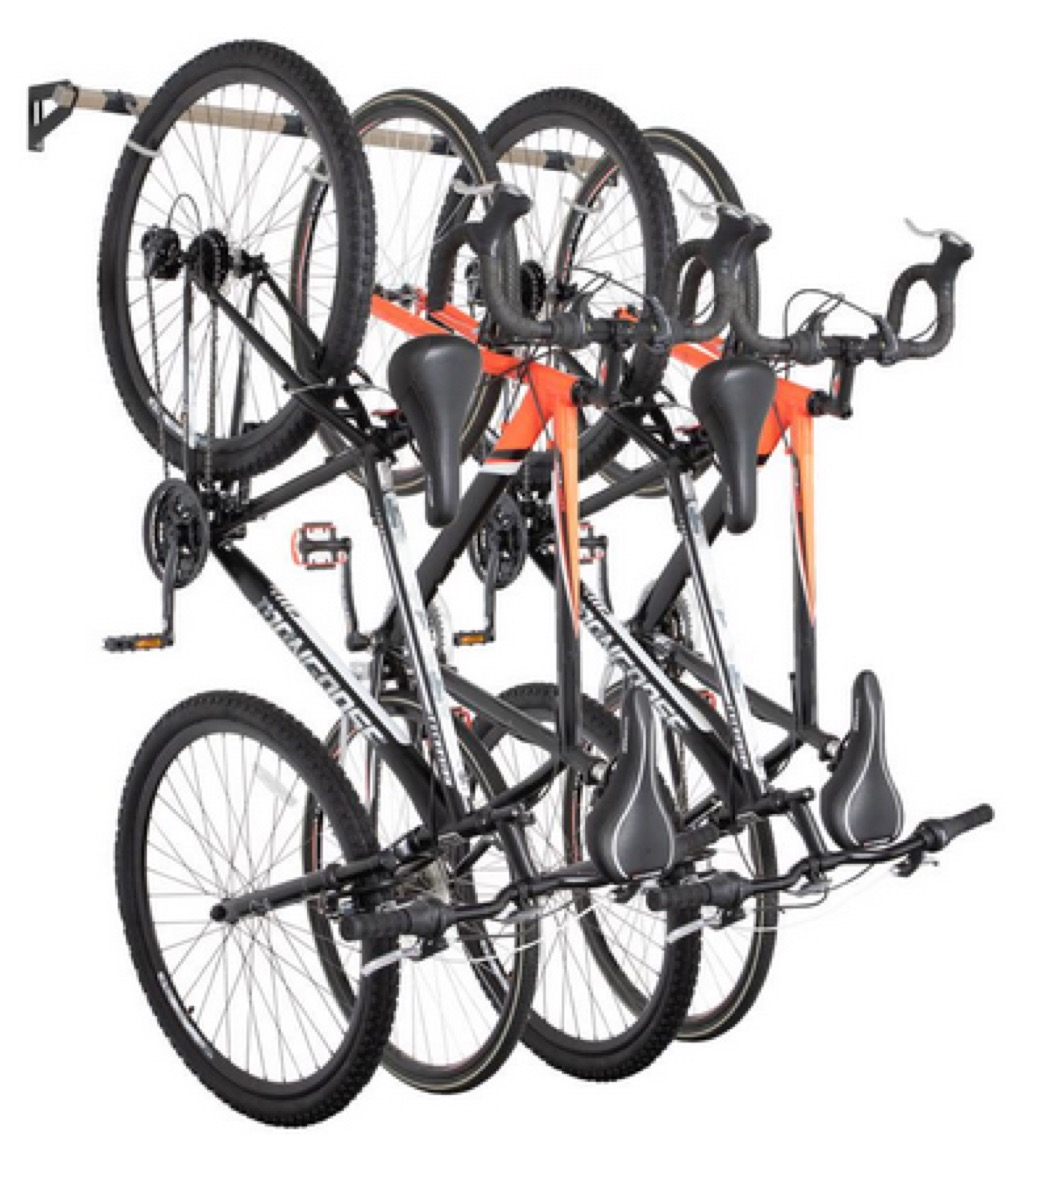 four bikes affixed to wall-mounted bike rack